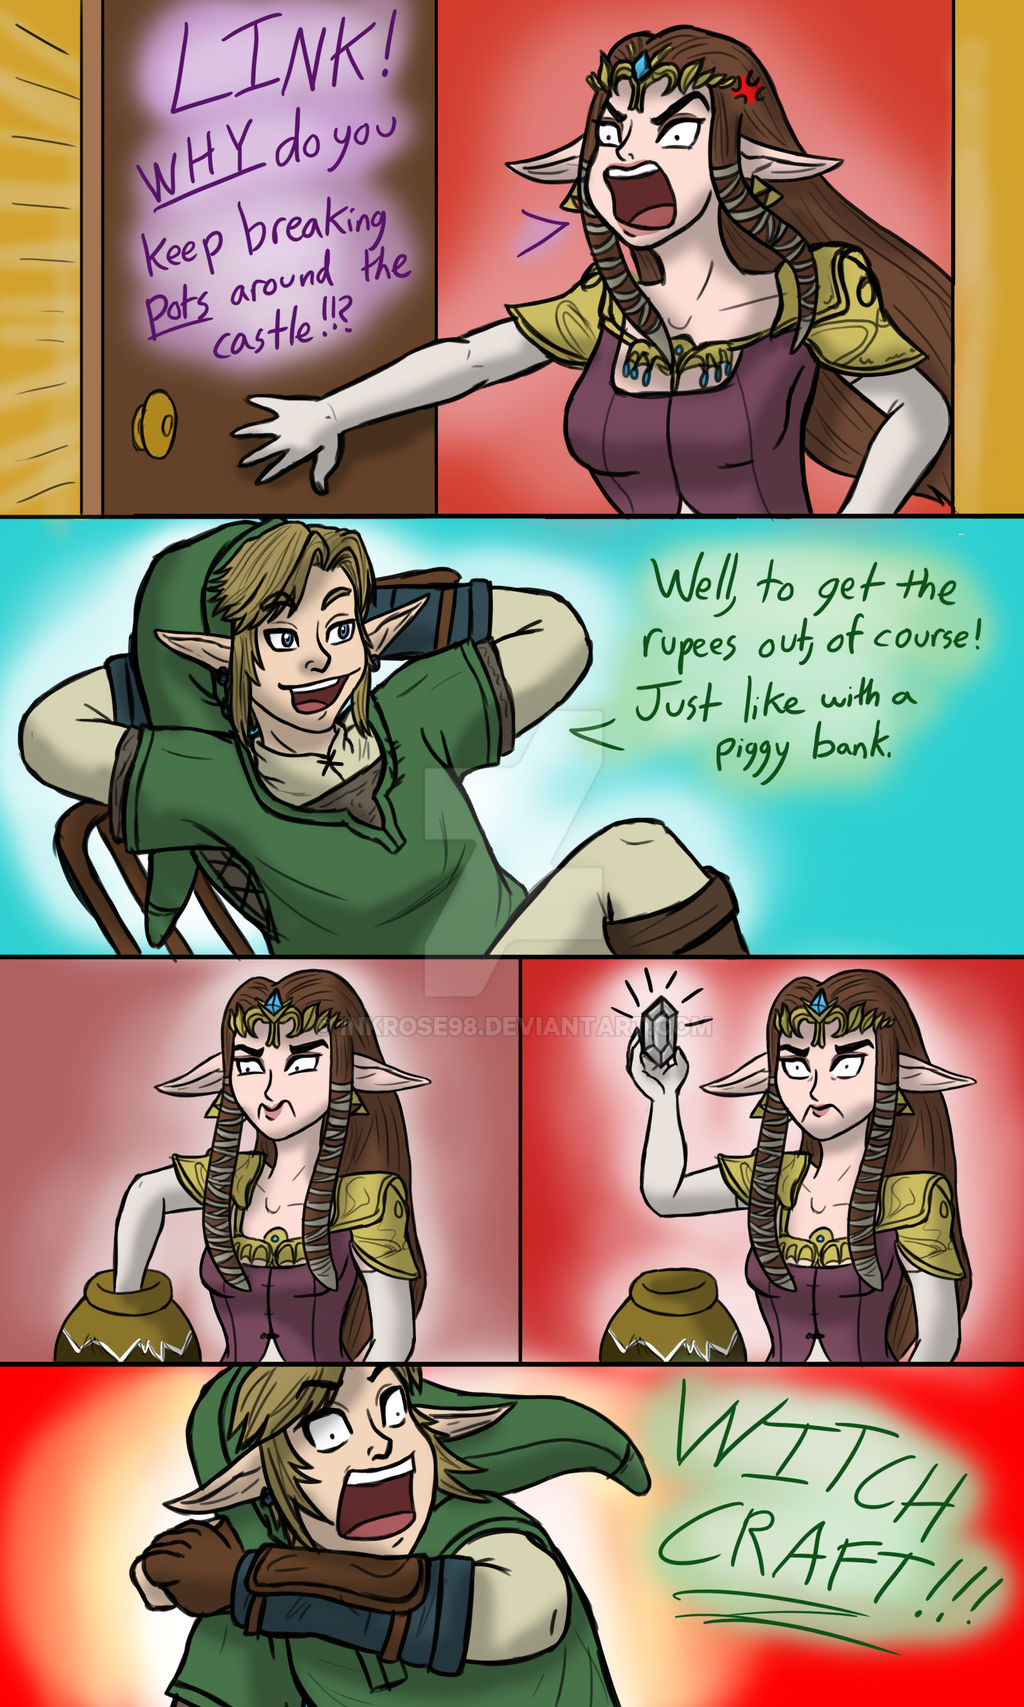 A comic about why Link breaks pots.